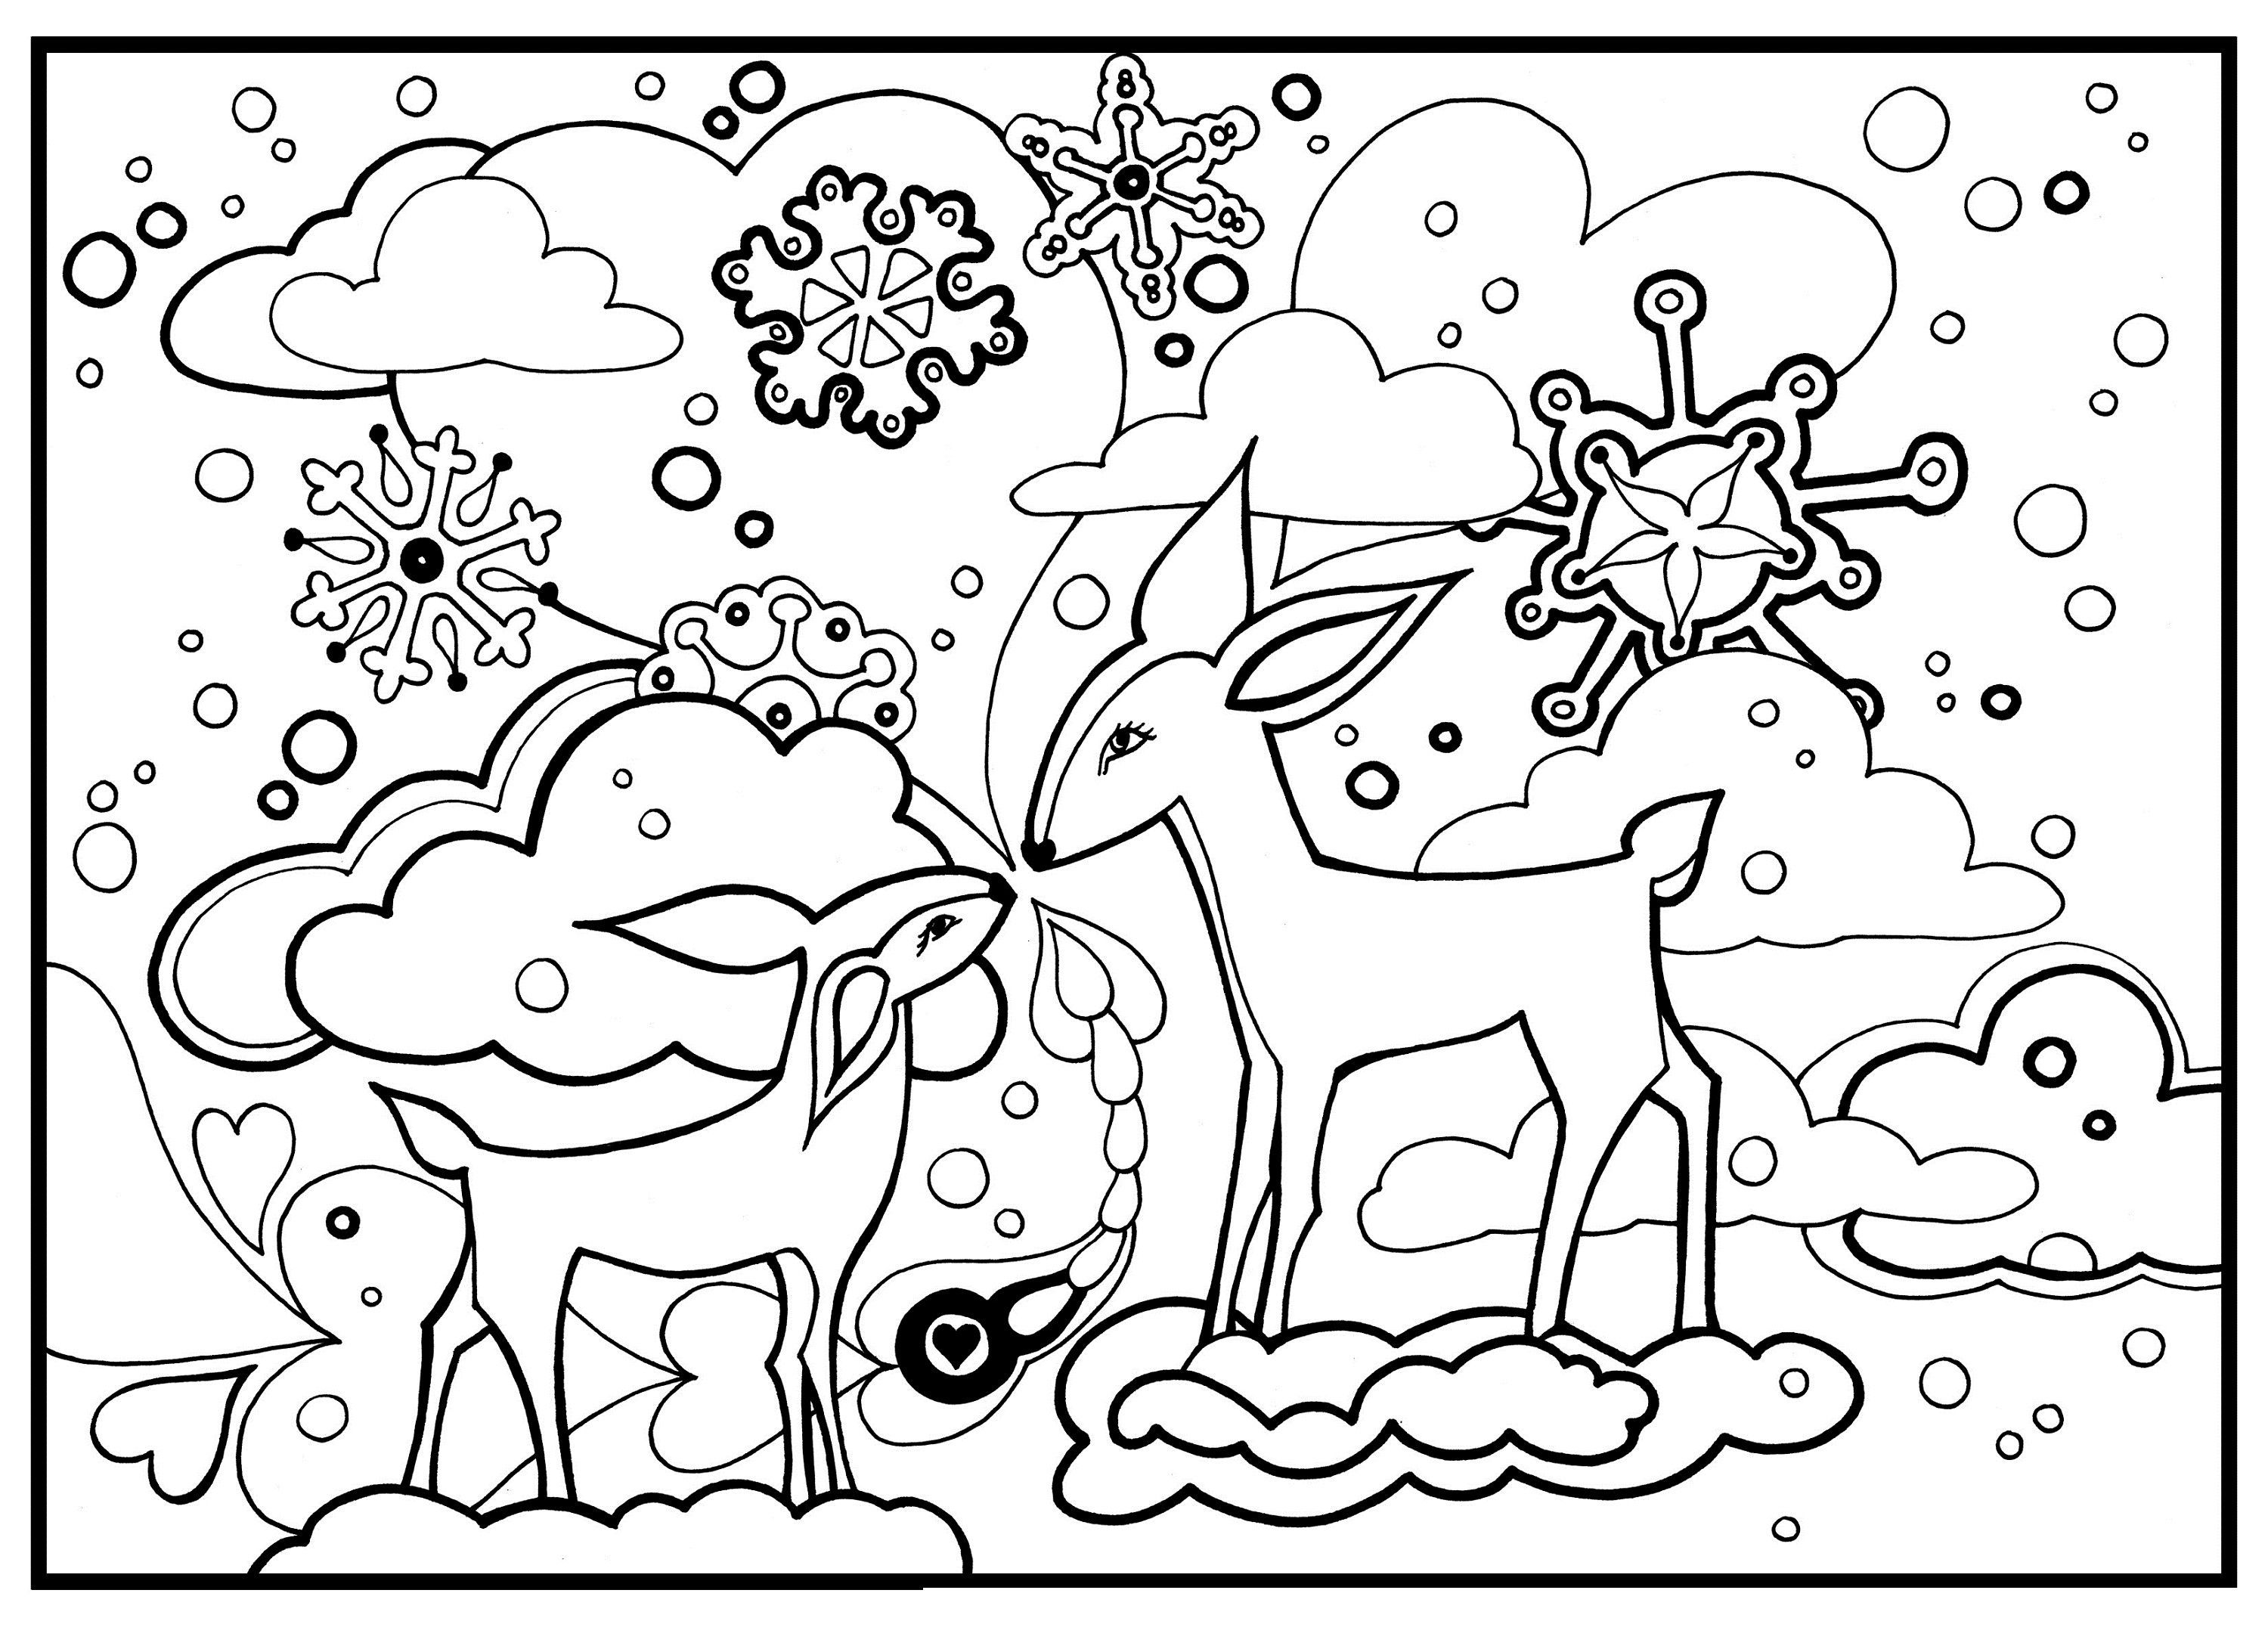 Free Coloring Pages for Kids and Adults  Animal coloring pages